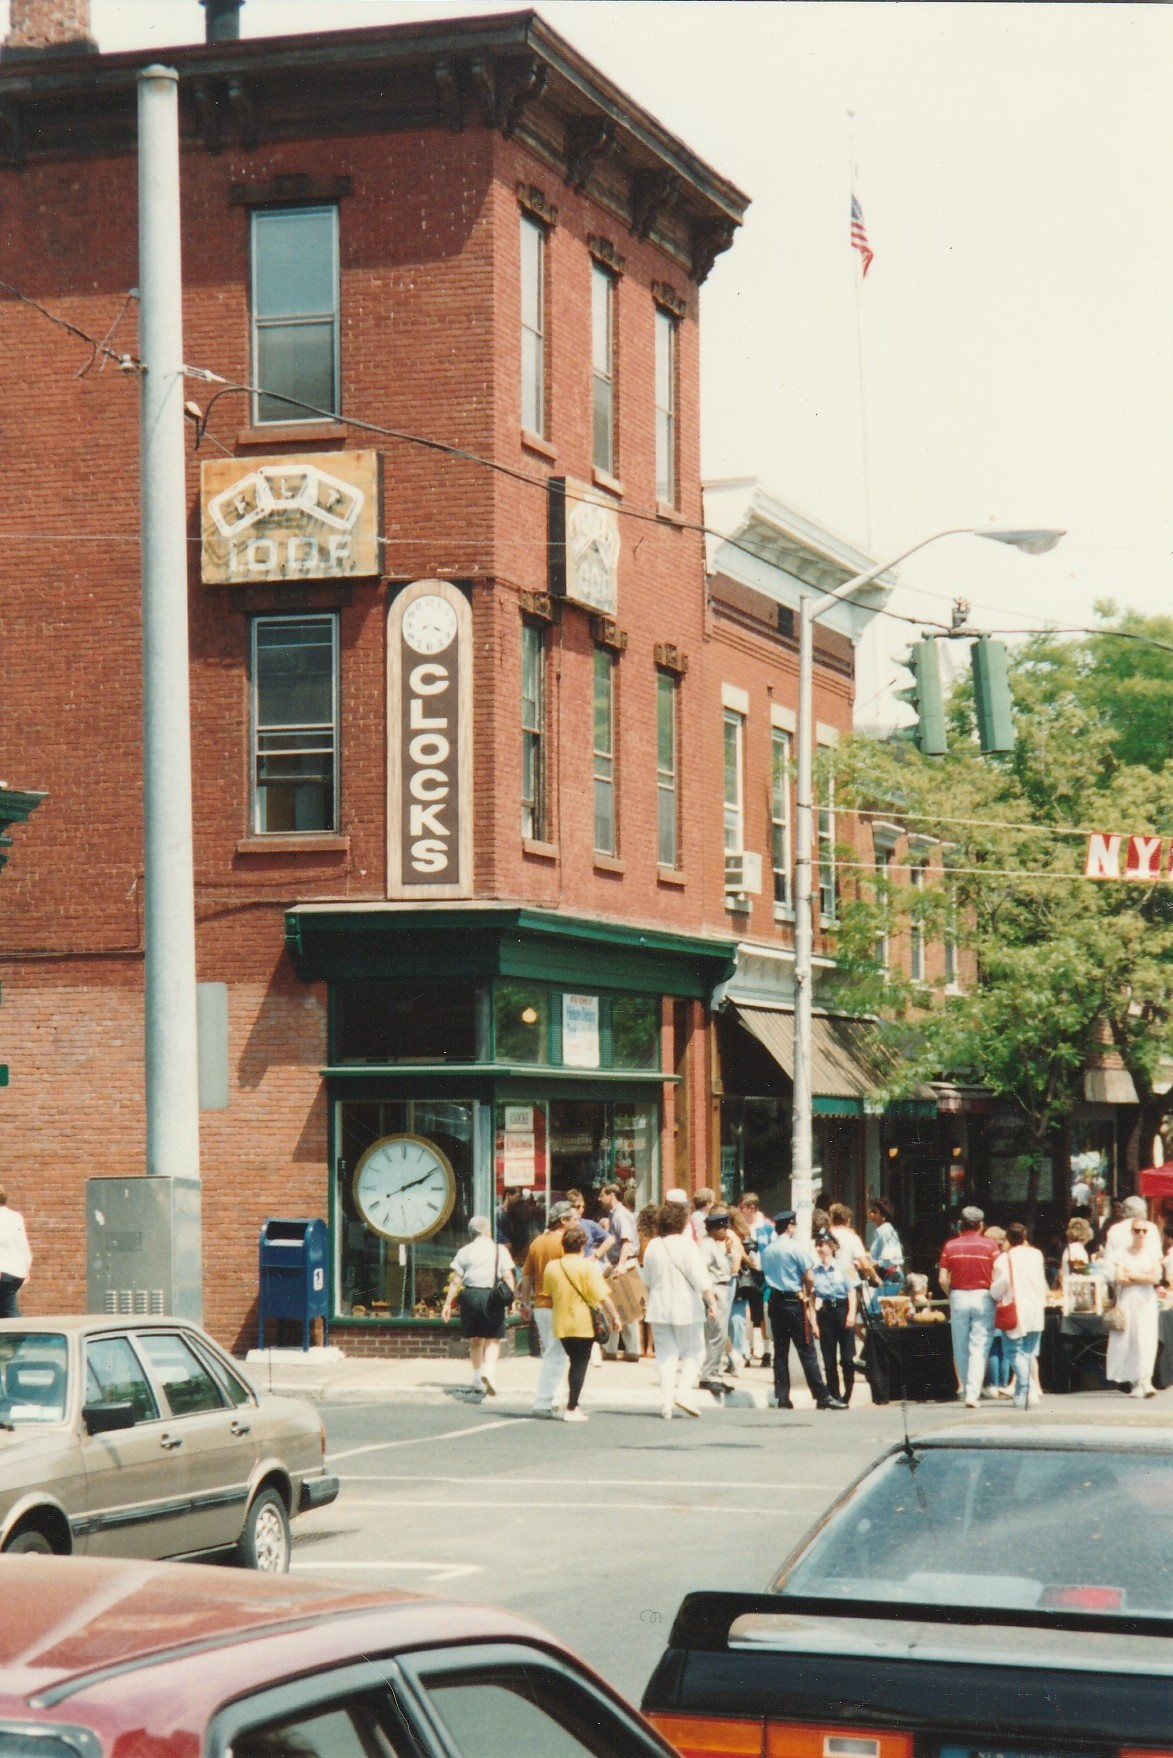 April 1993 - The store moves from North Broadway to its second location at 135 Main Street